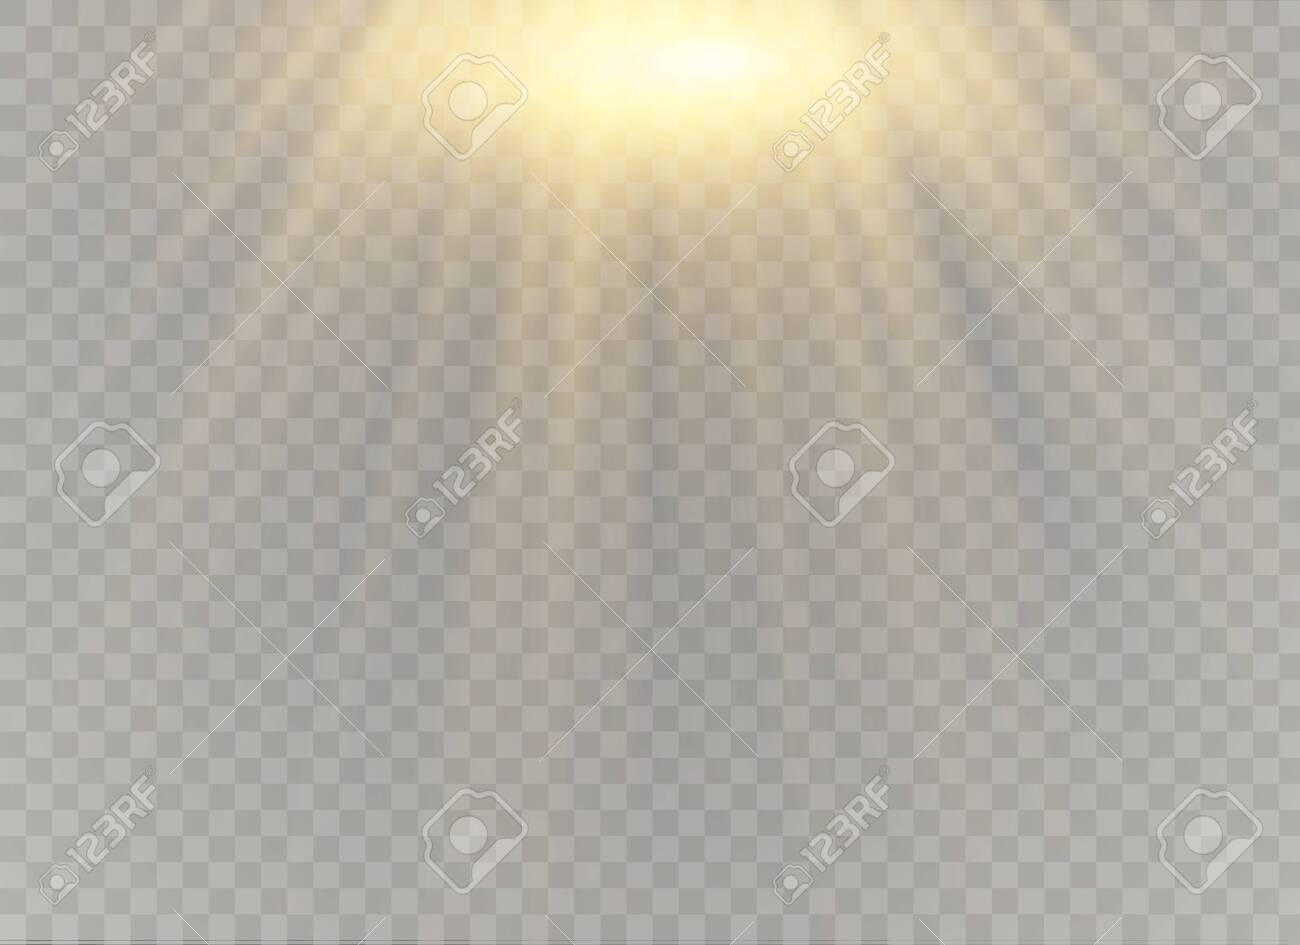 Vector transparent sunlight special lens flash light effect.front sun lens flash. Vector blur in the light of radiance. Element of decor. Horizontal stellar rays and searchlight. - 129012604